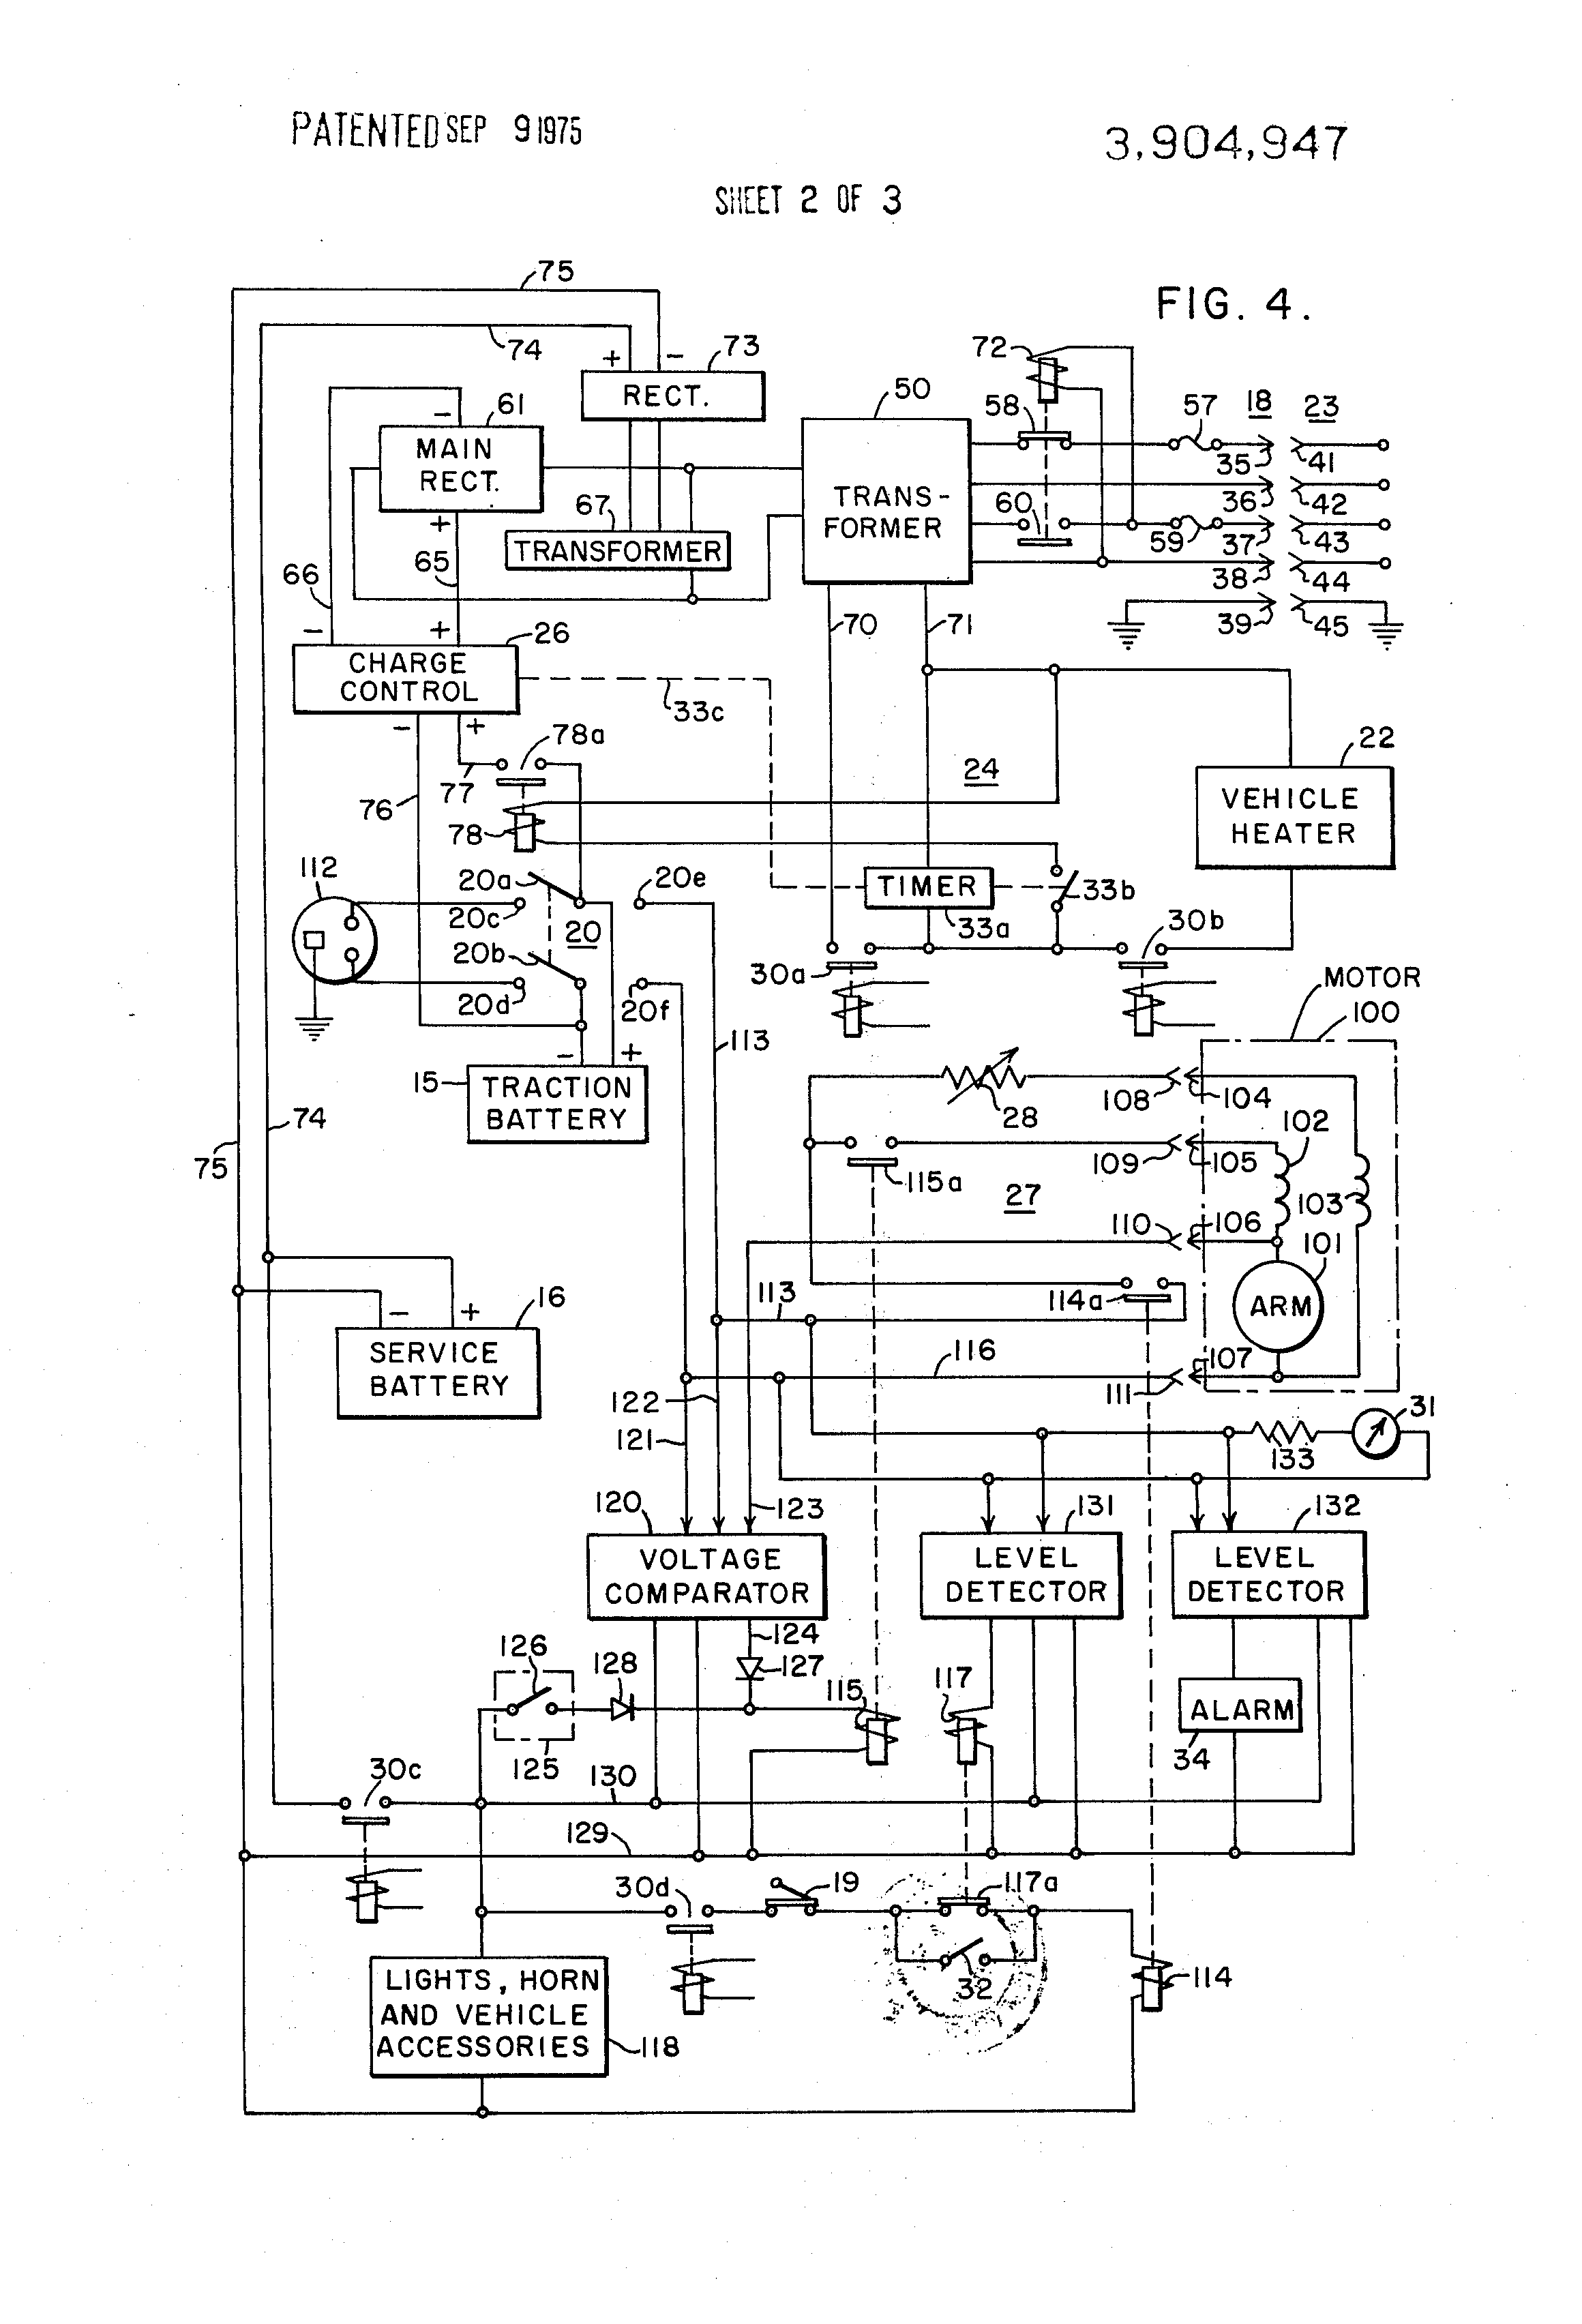 US3904947 2 patent us3904947 vehicle mounted battery charging system for an lester controls wiring diagrams at webbmarketing.co